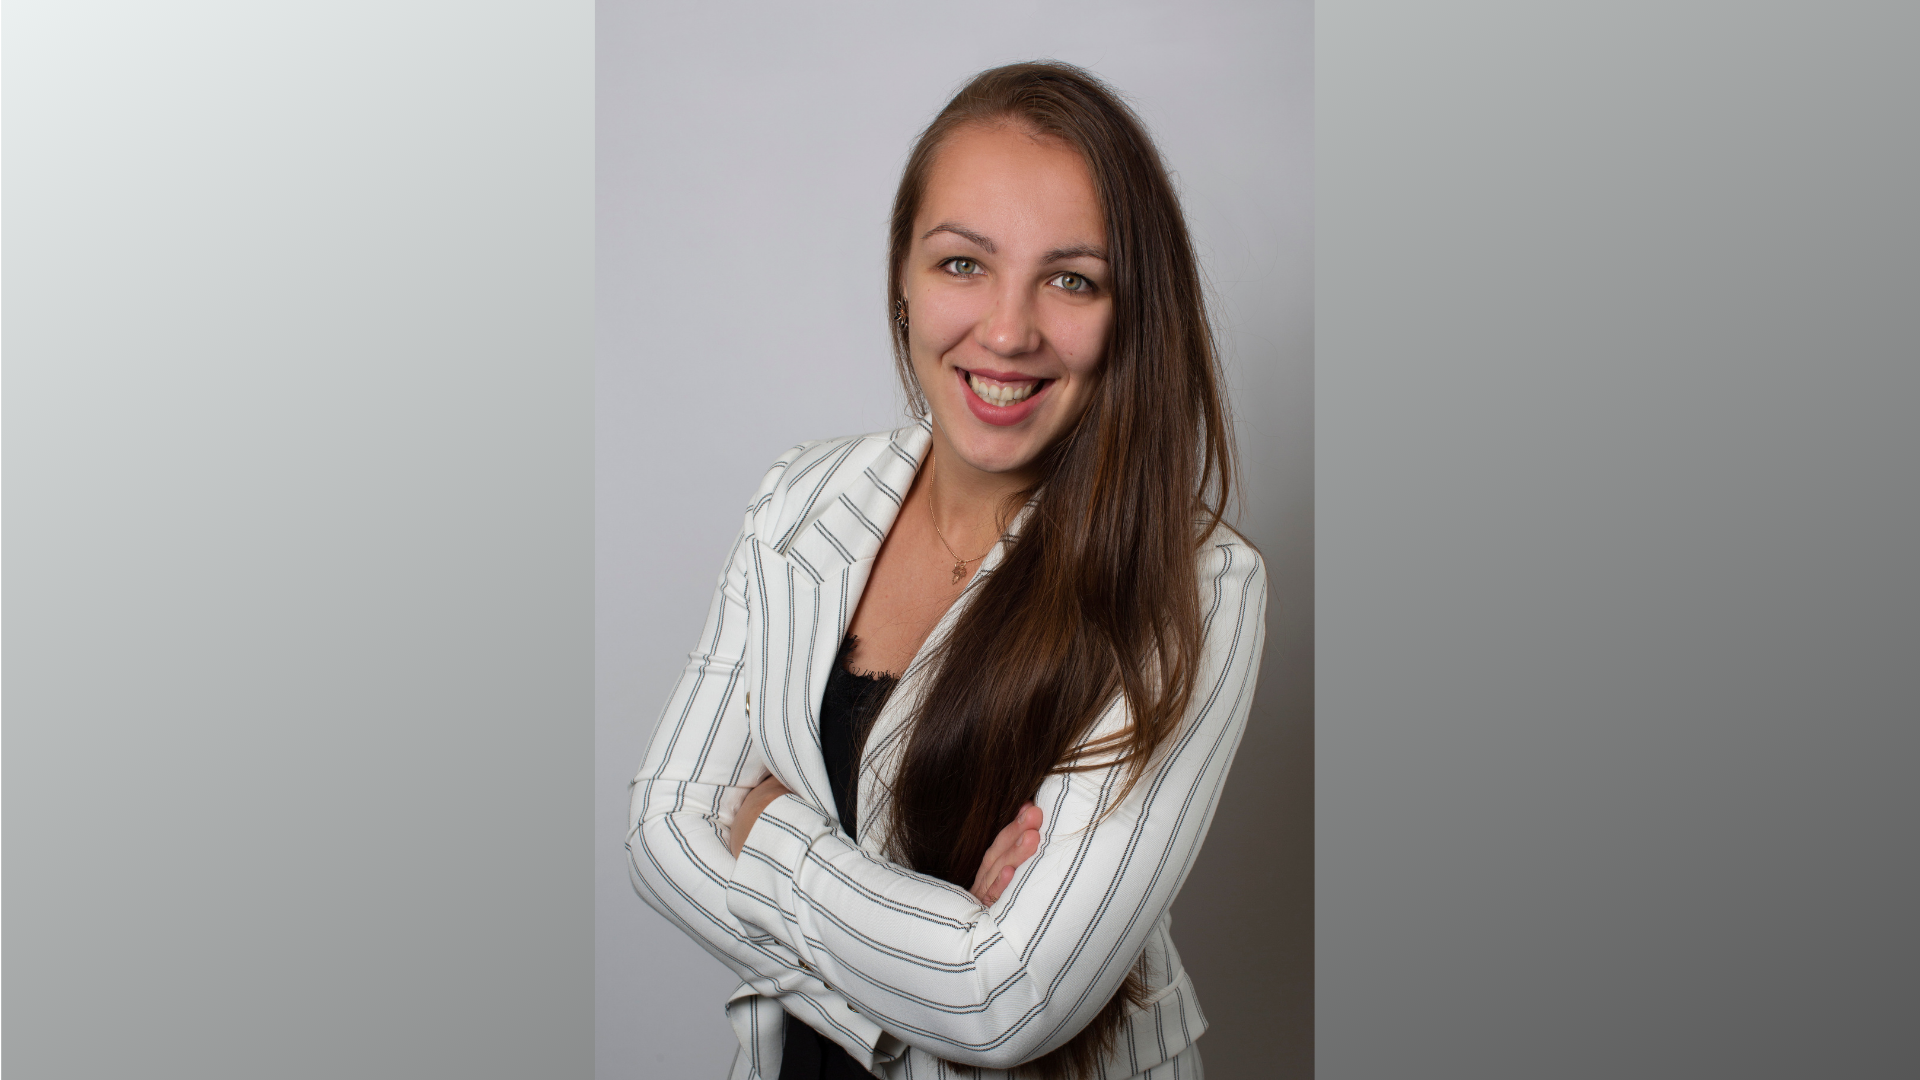 Making your happiness the priority, Licensed Salesperson from Waikato Real Estate, Ksenia is a fresh face for the real estate industry that will get your property sold.